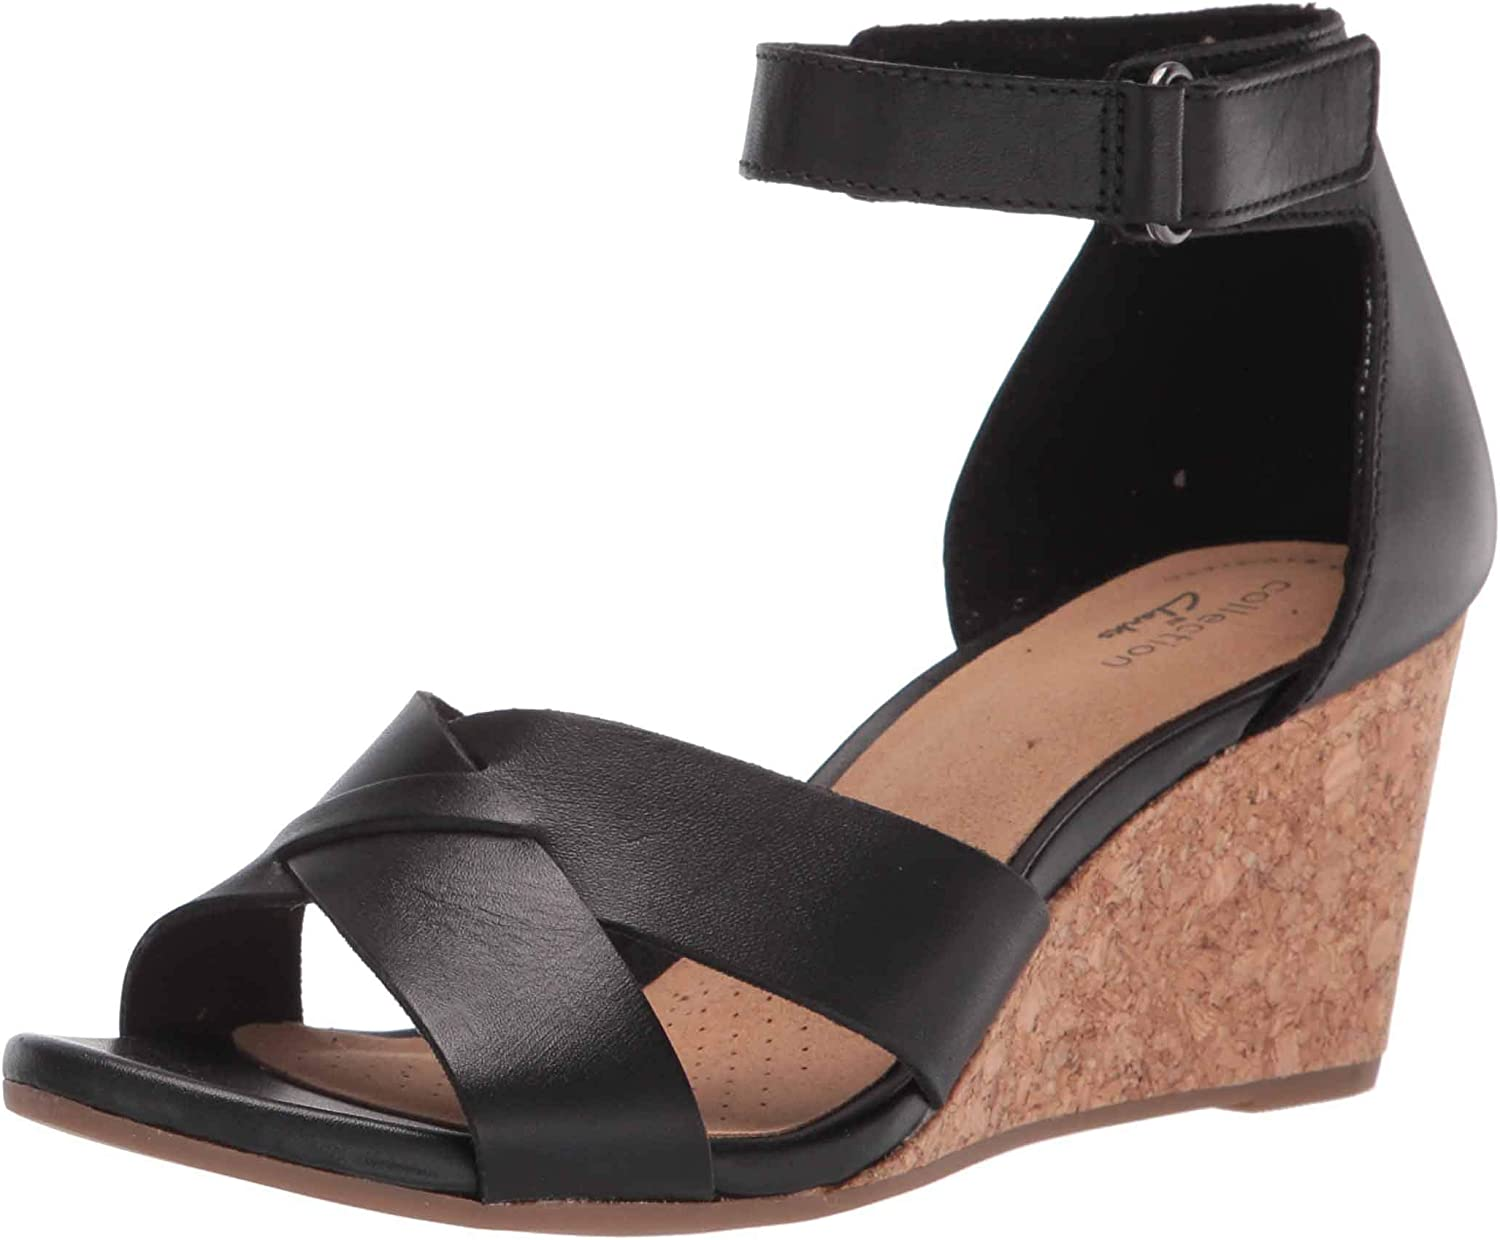 Clarks Women's Margee Wedge Max 58% OFF Beauty products Sandal Gracie